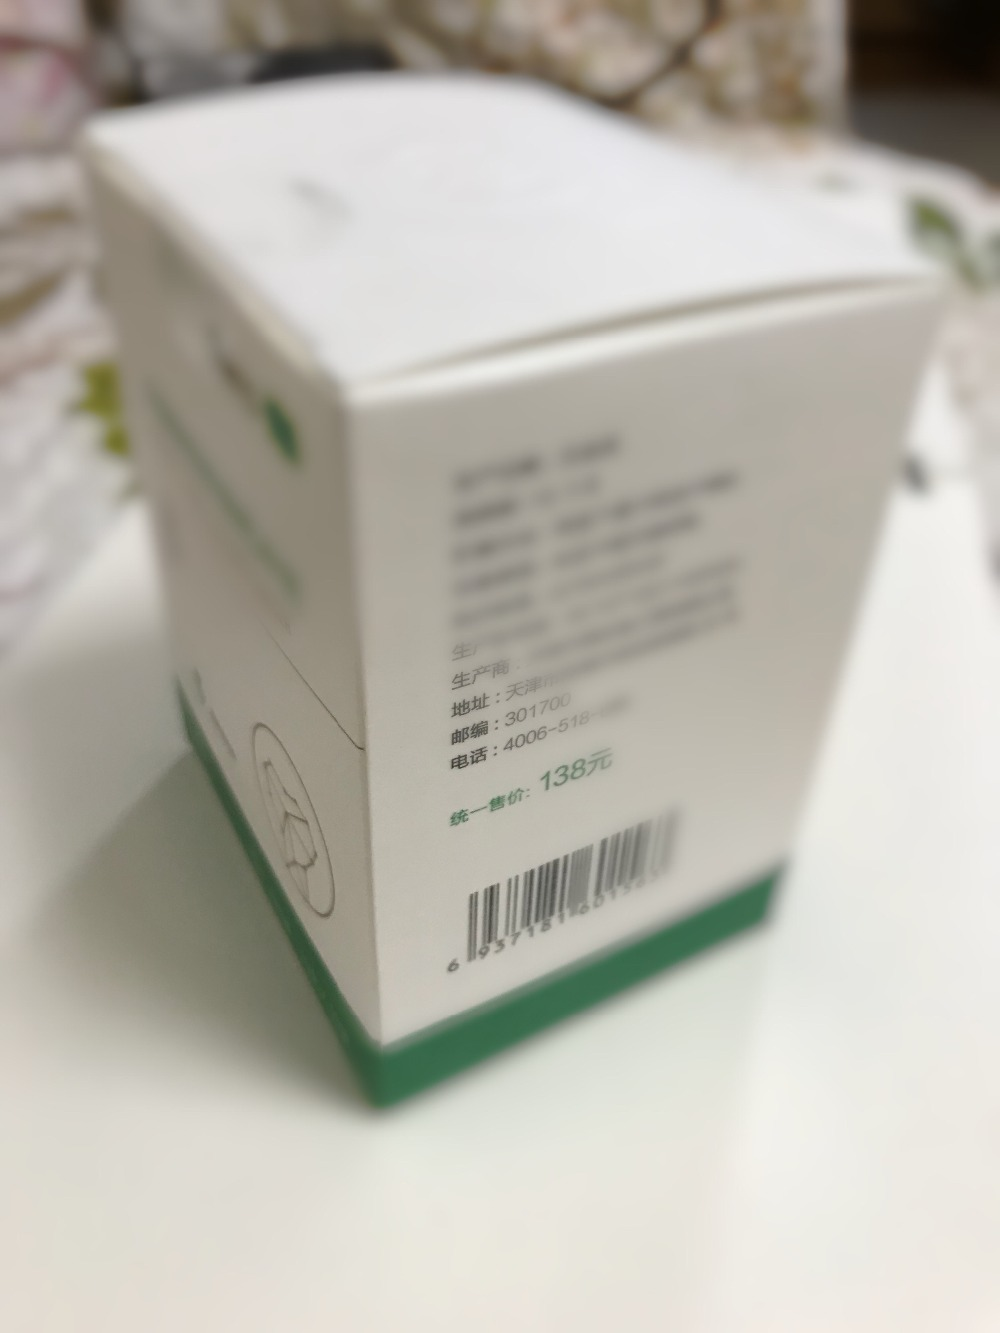 new package 5 Boxes Tien Nutrient Super Cal cium Produced in 2019